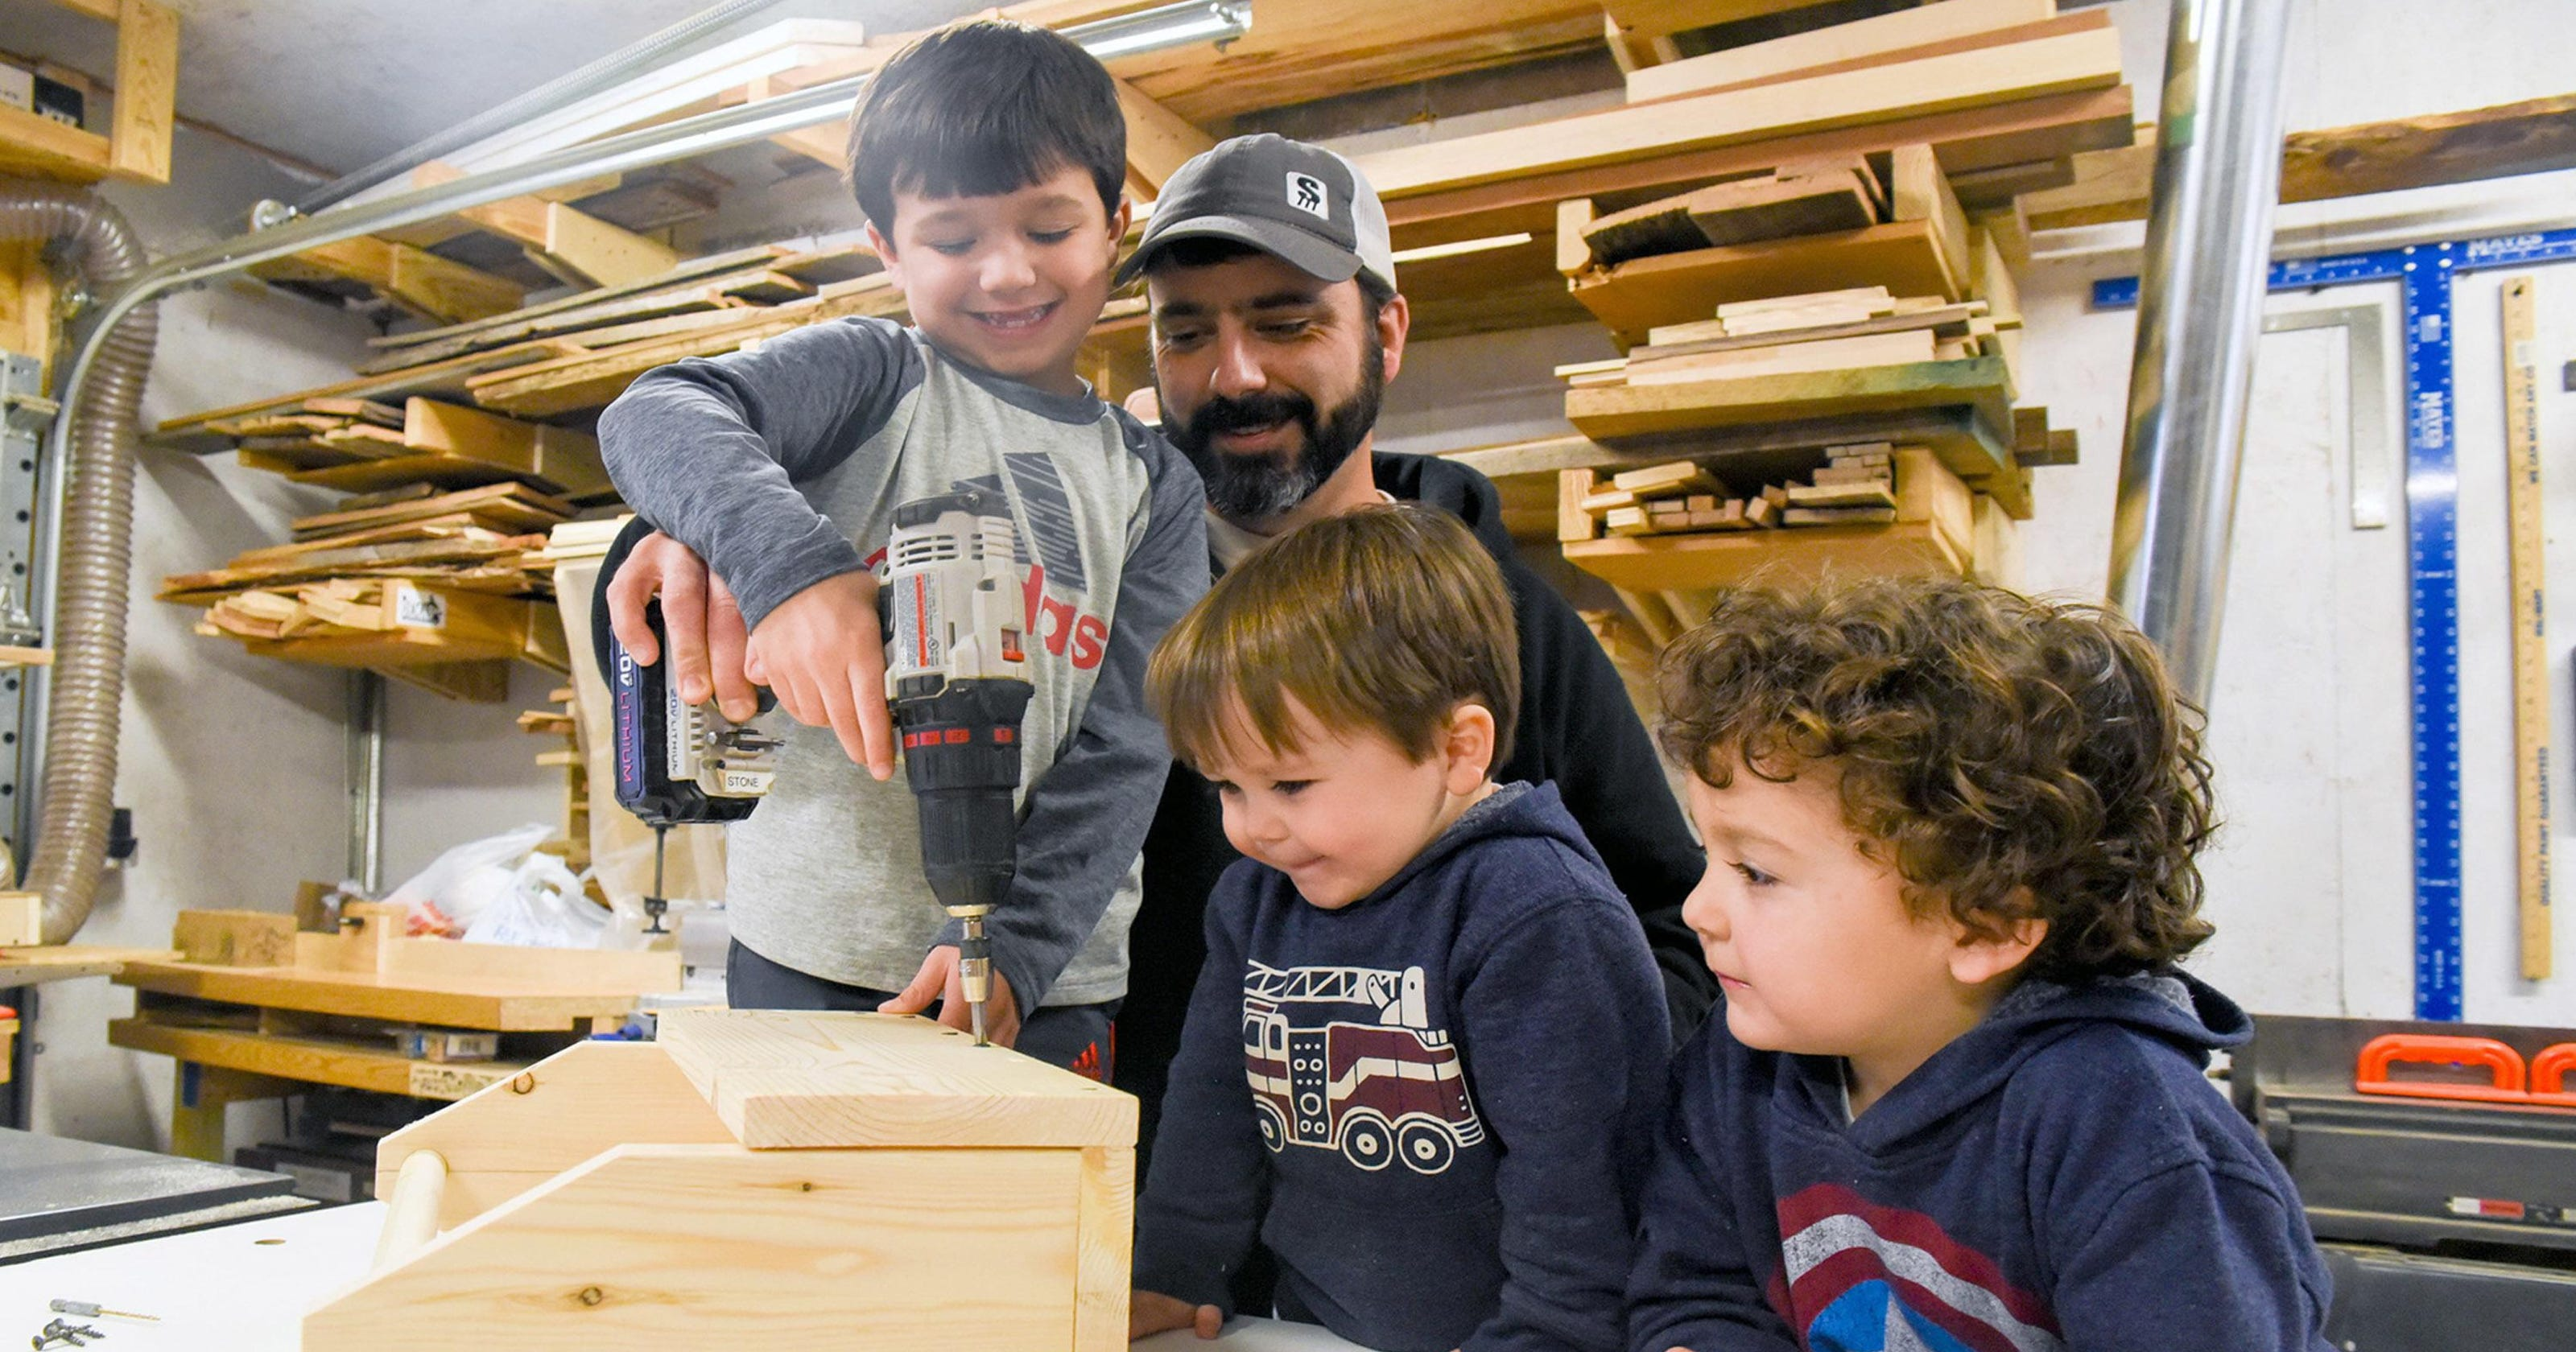 new hope man teaches woodworking skills, life lessons